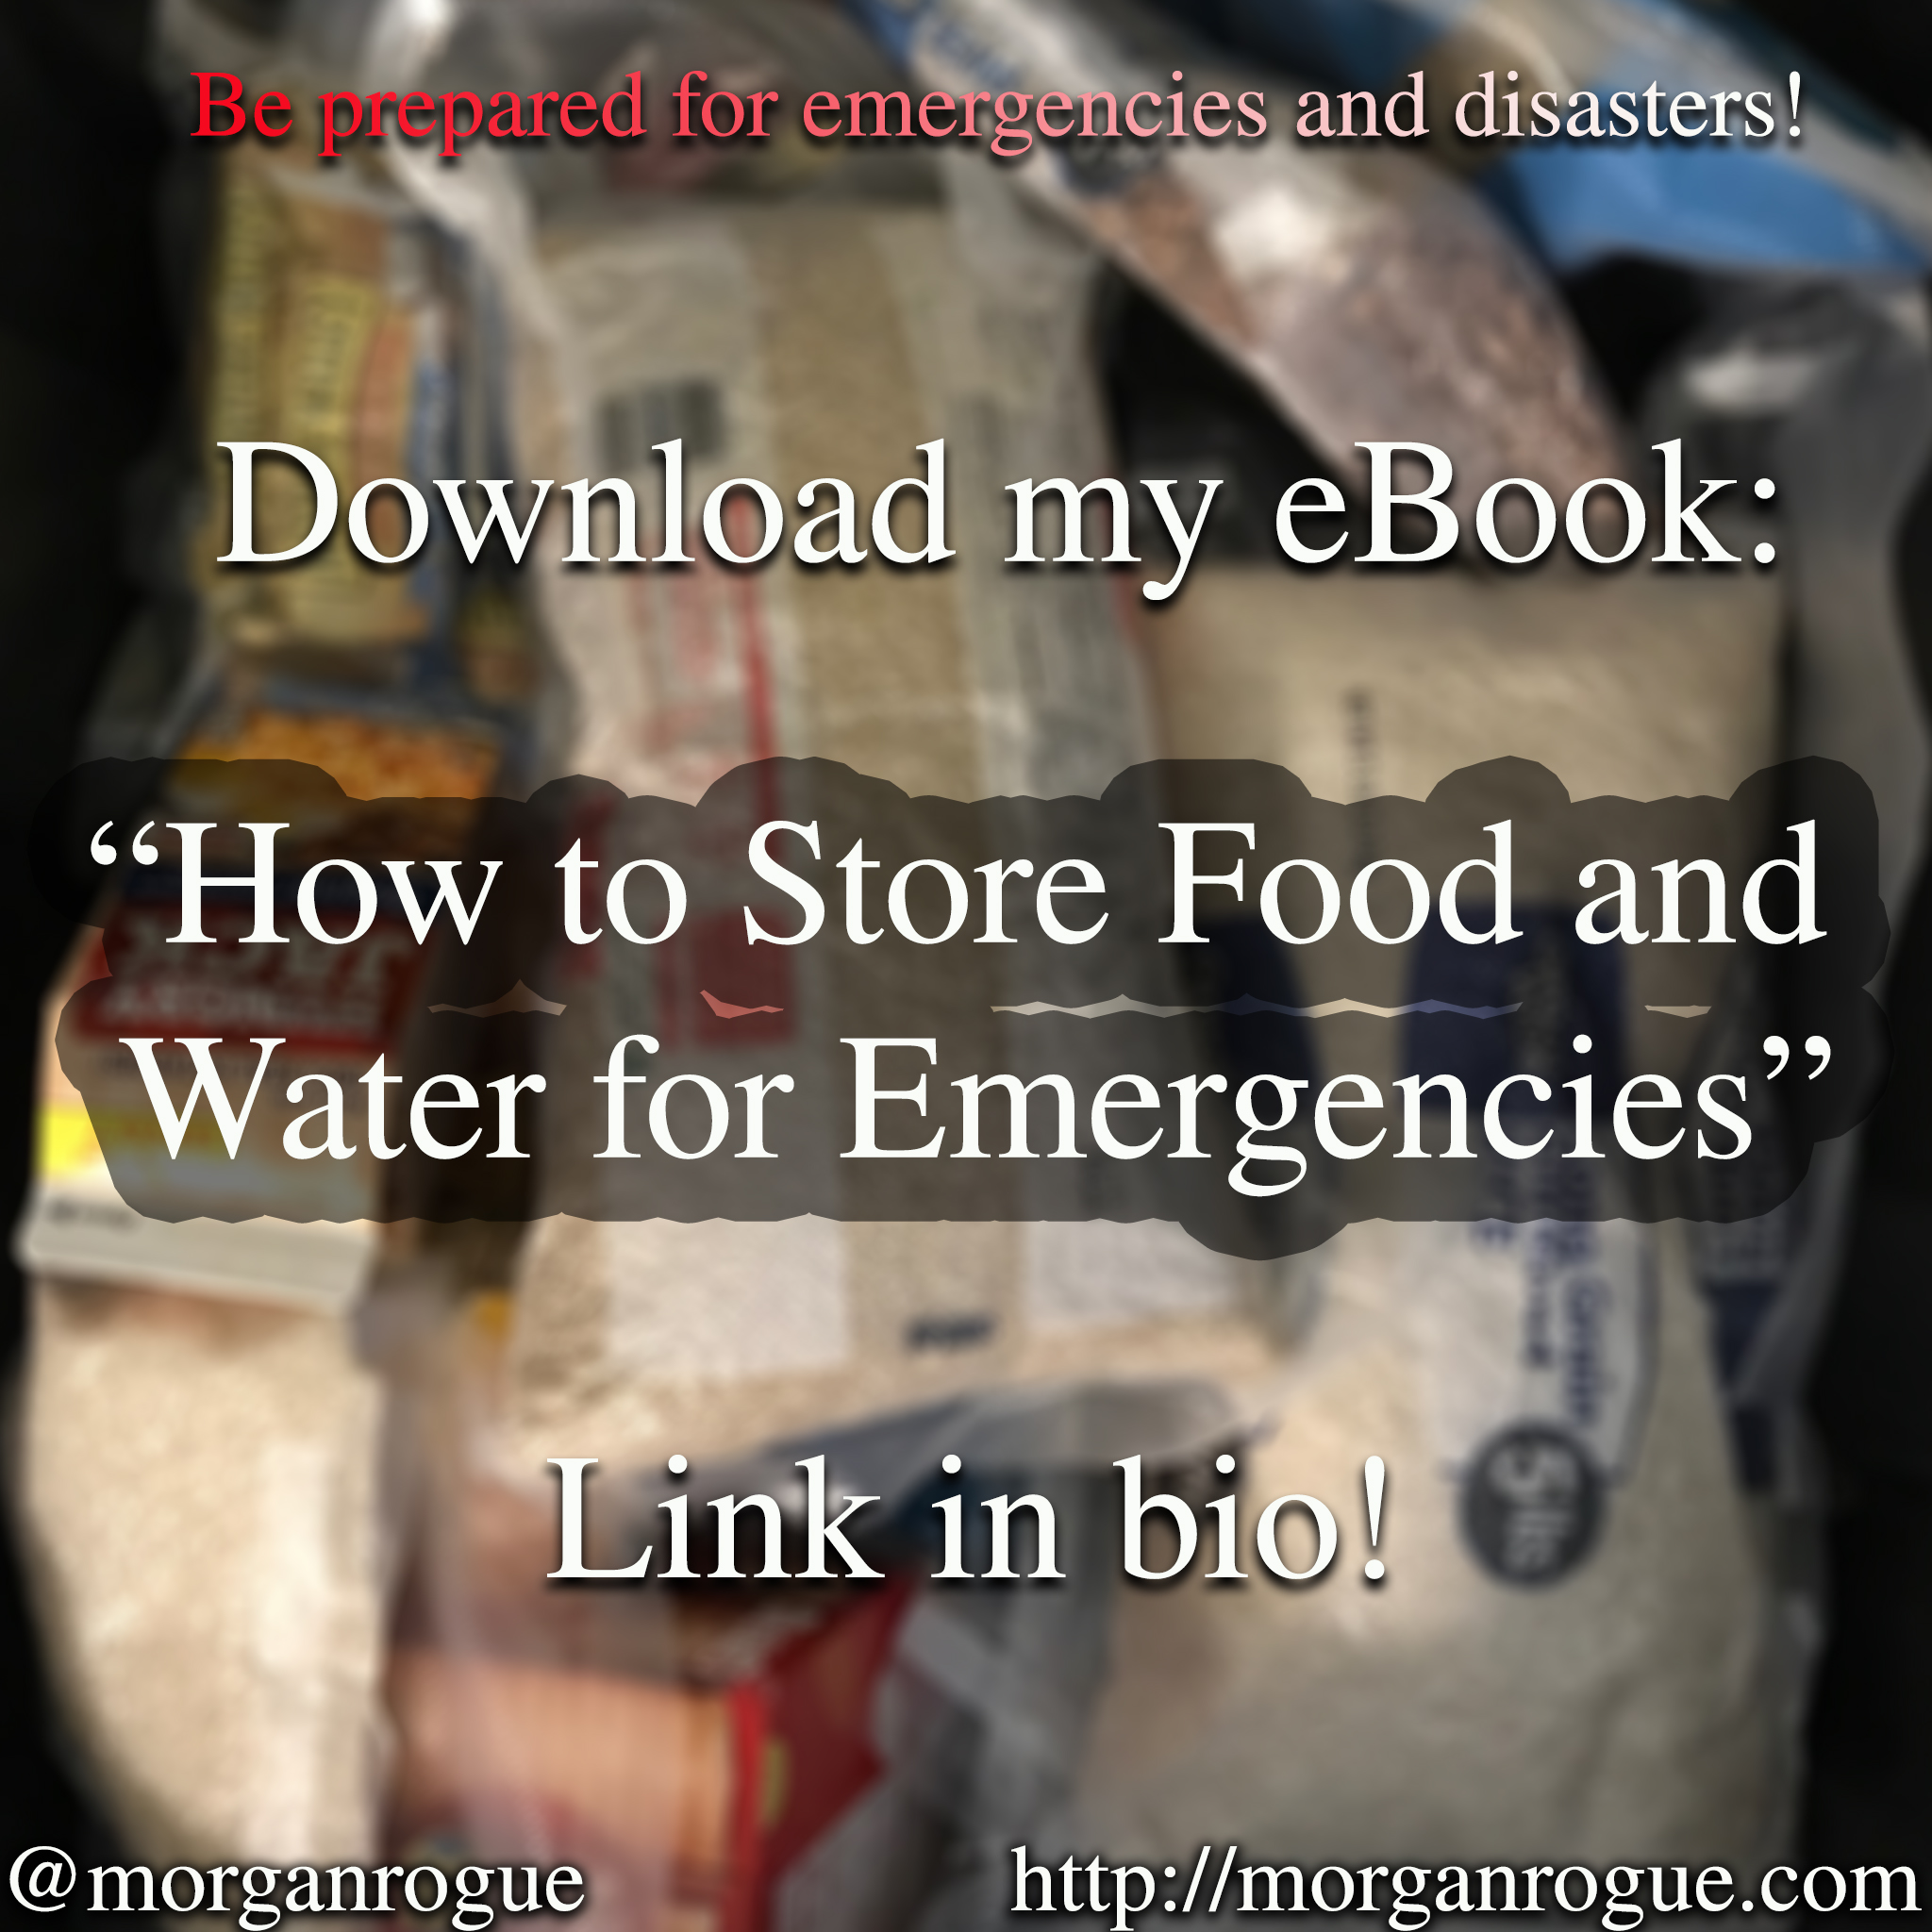 Learn How to Store Food and Water for Emergencies